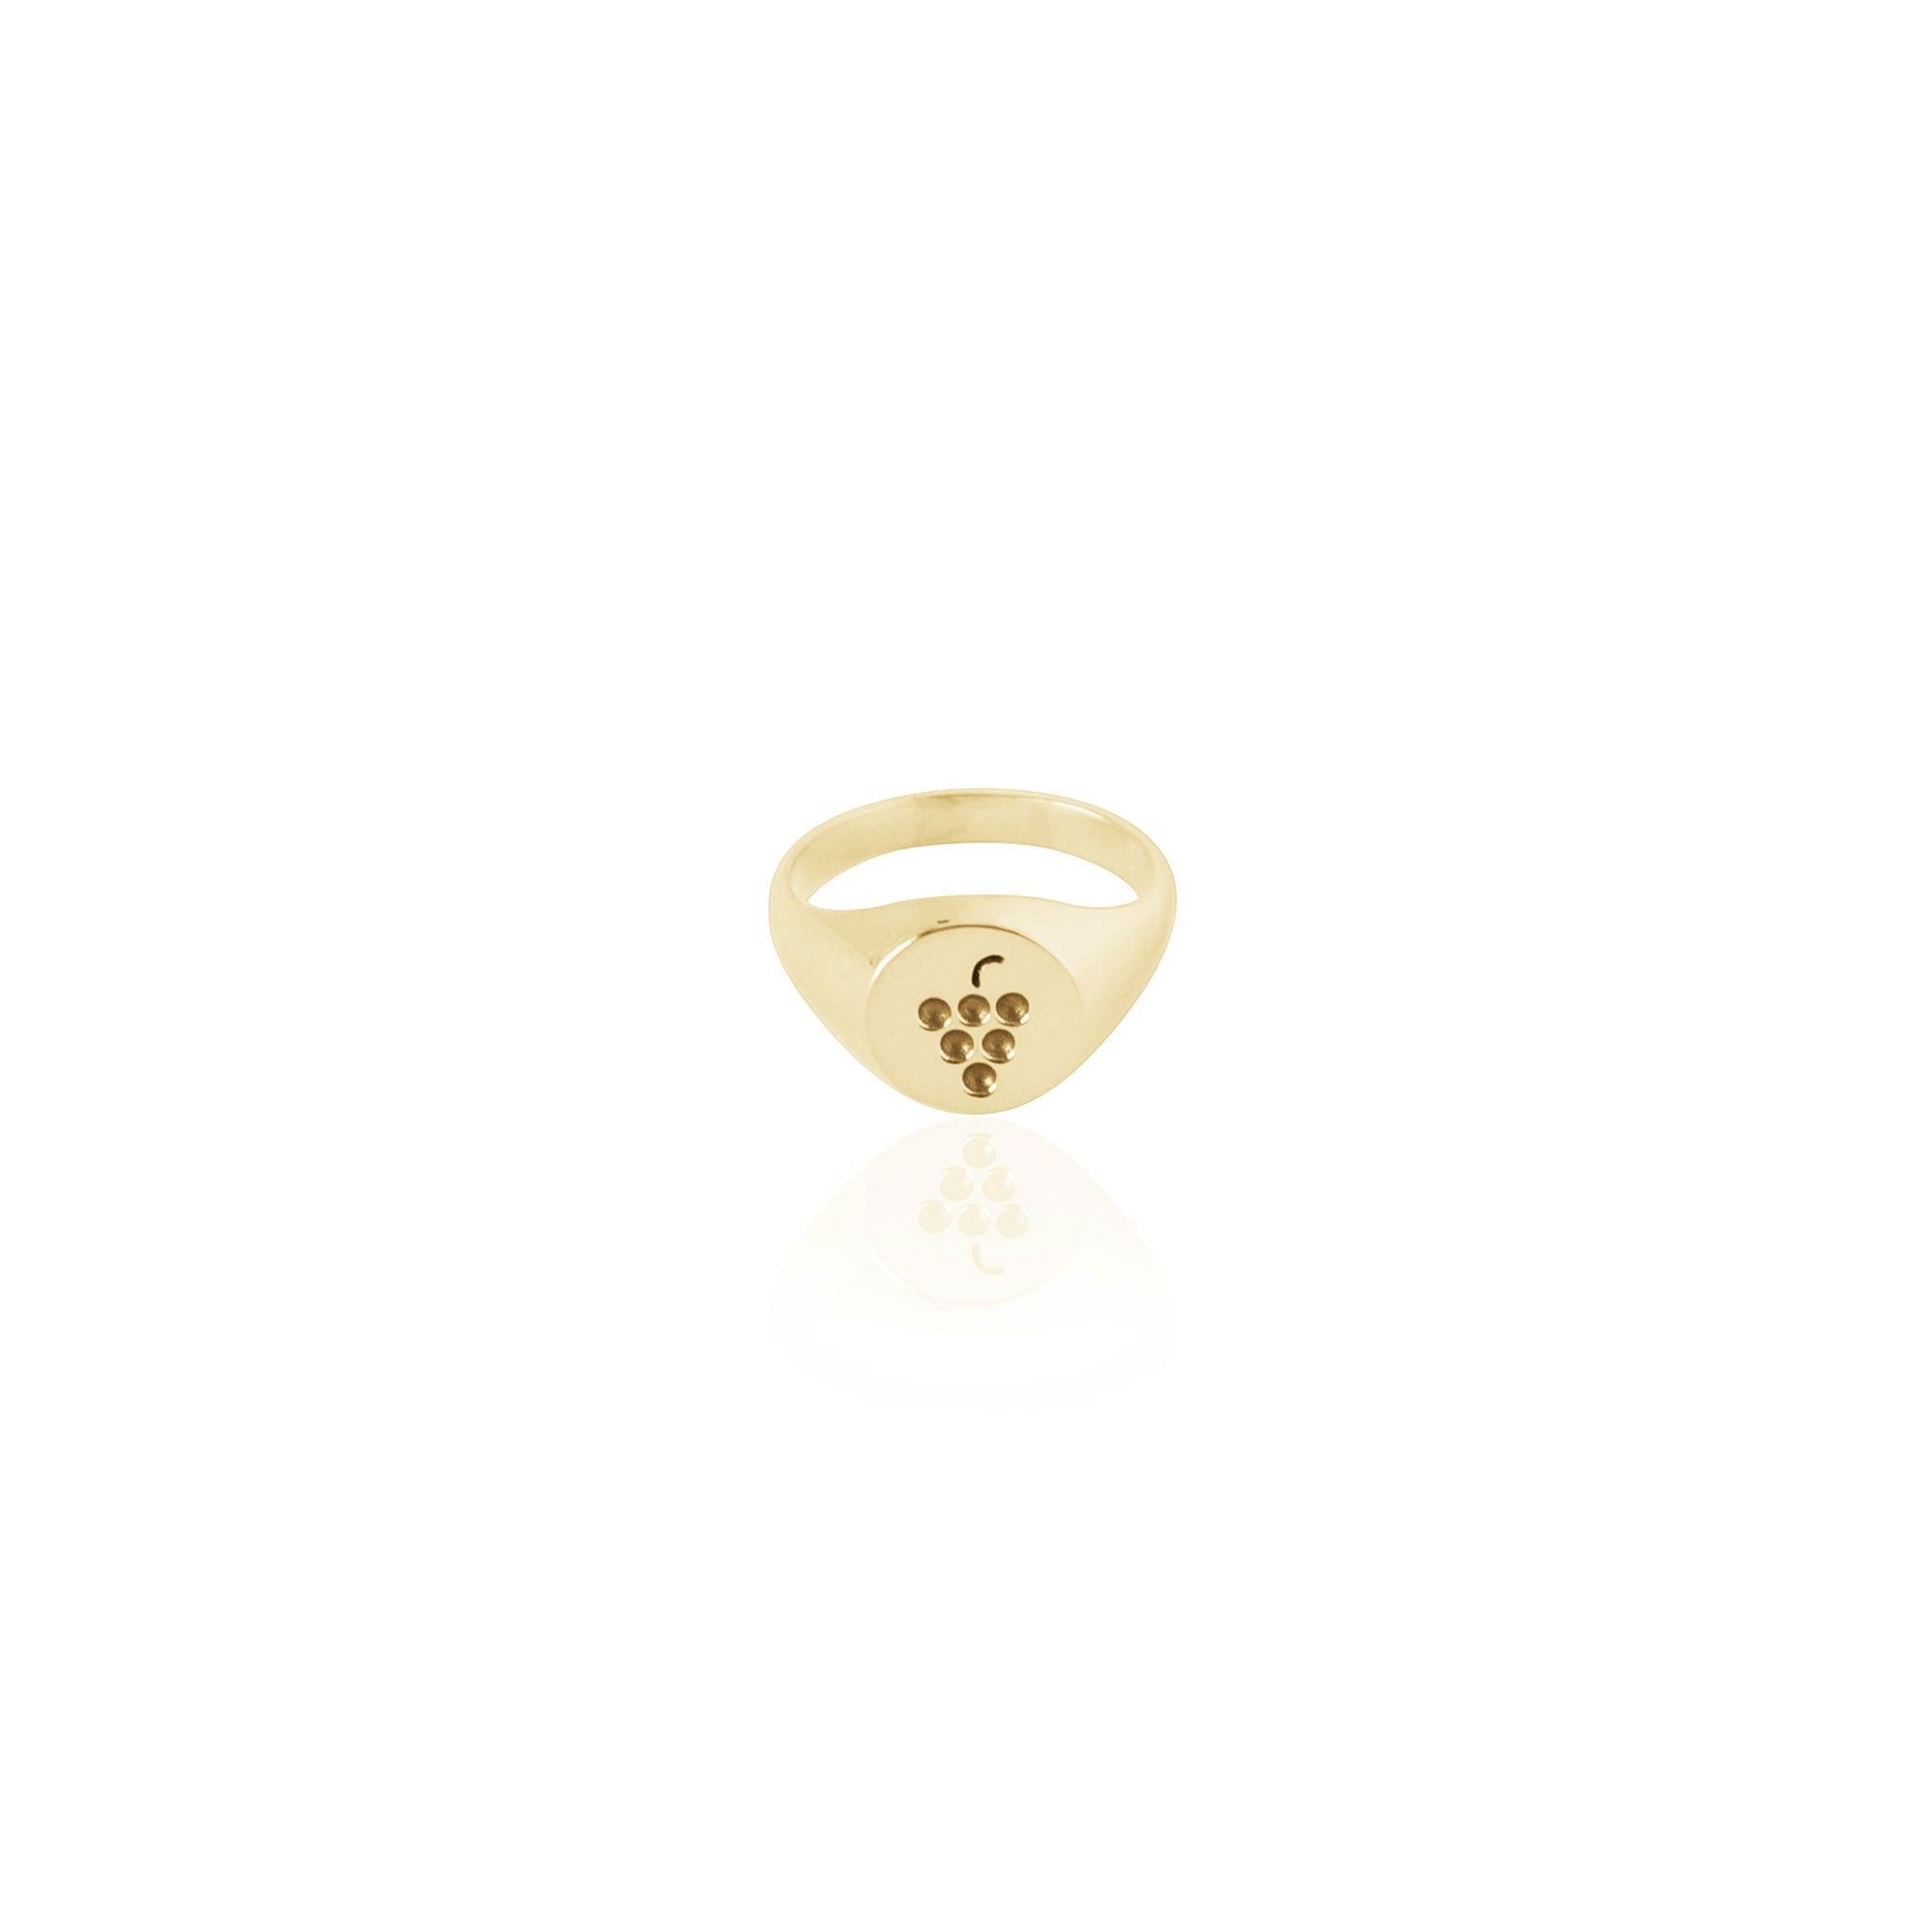 Coconut and Bliss x La Luna Rose Berry Crumble Signet Ring - GOLD